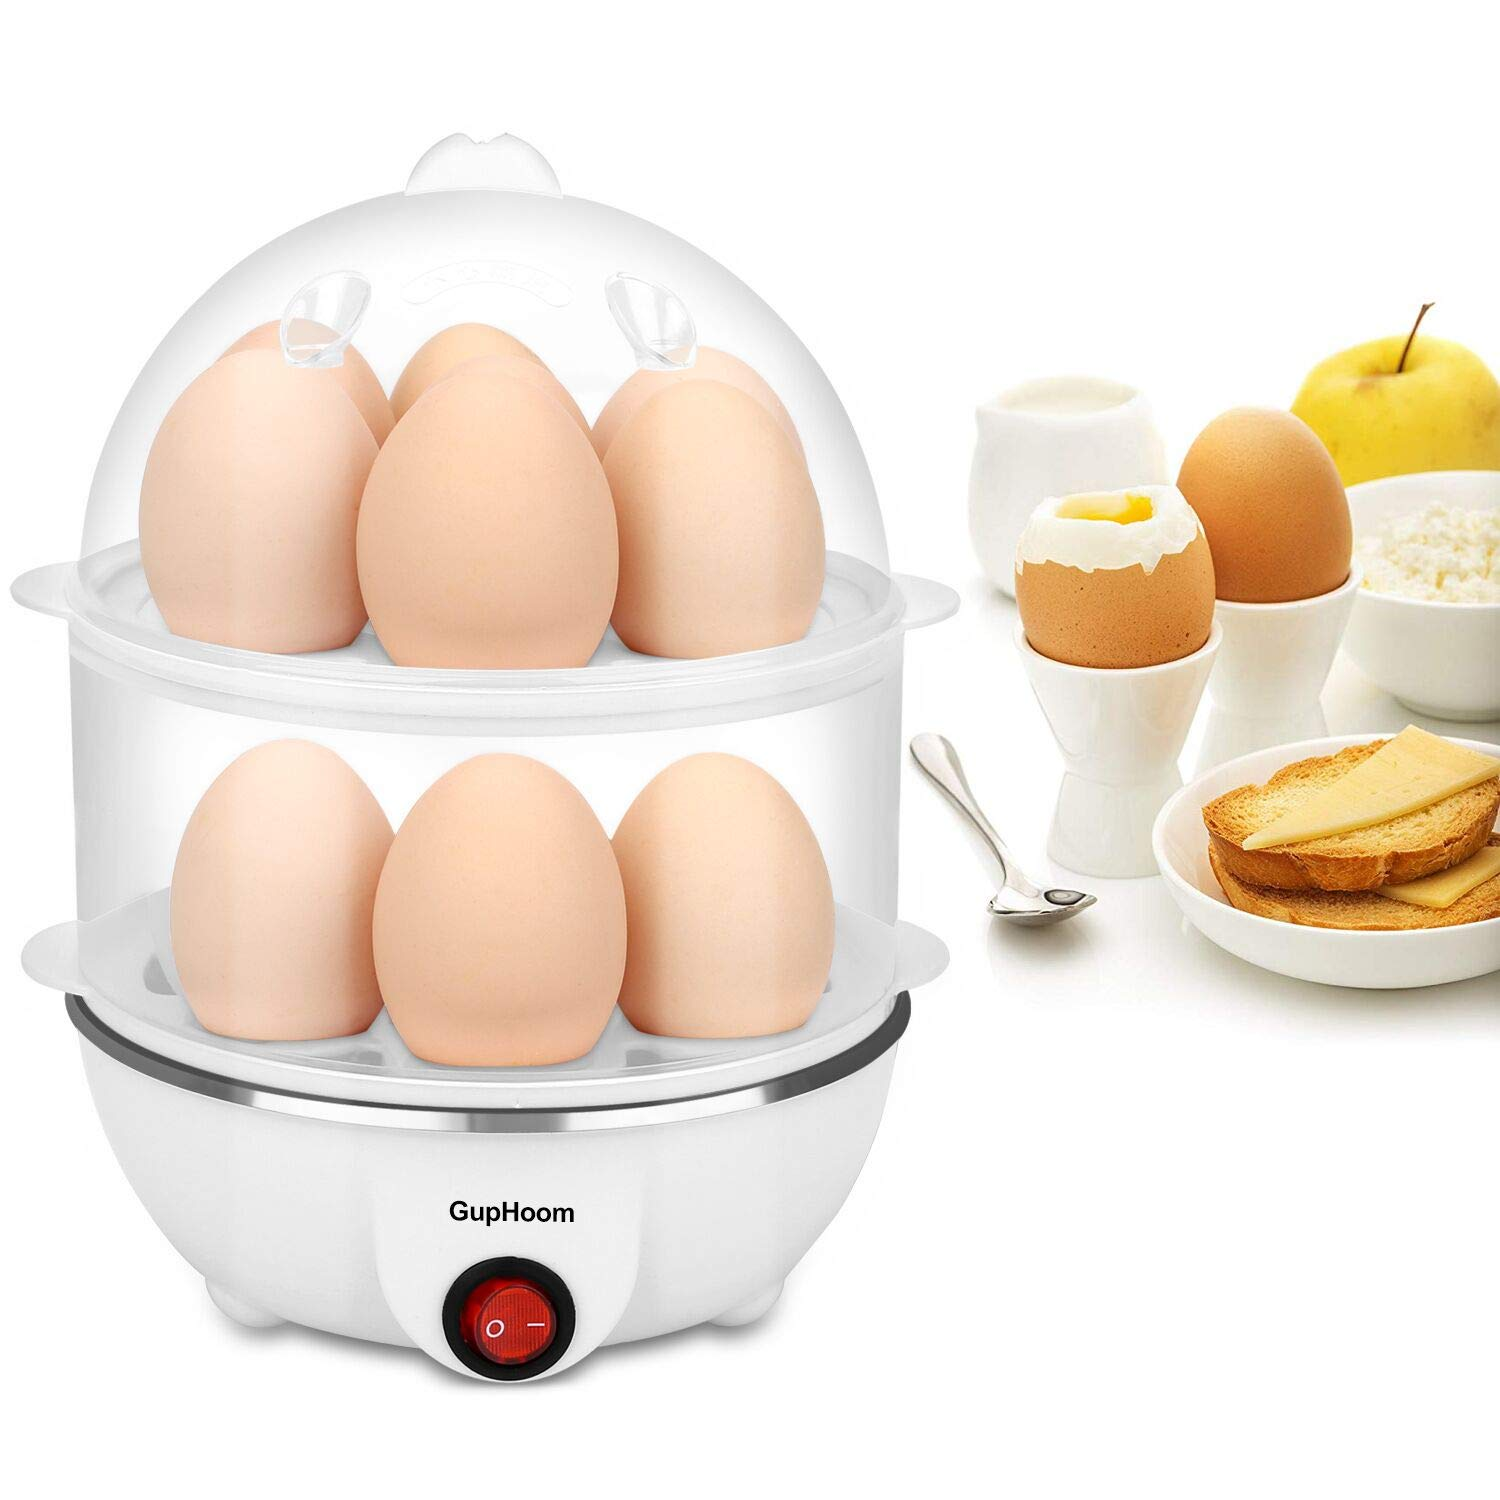 GupHoom Egg Cooker Boiler Steamer 14 Egg Capacity With Automatic Shut Off White by GupHoom